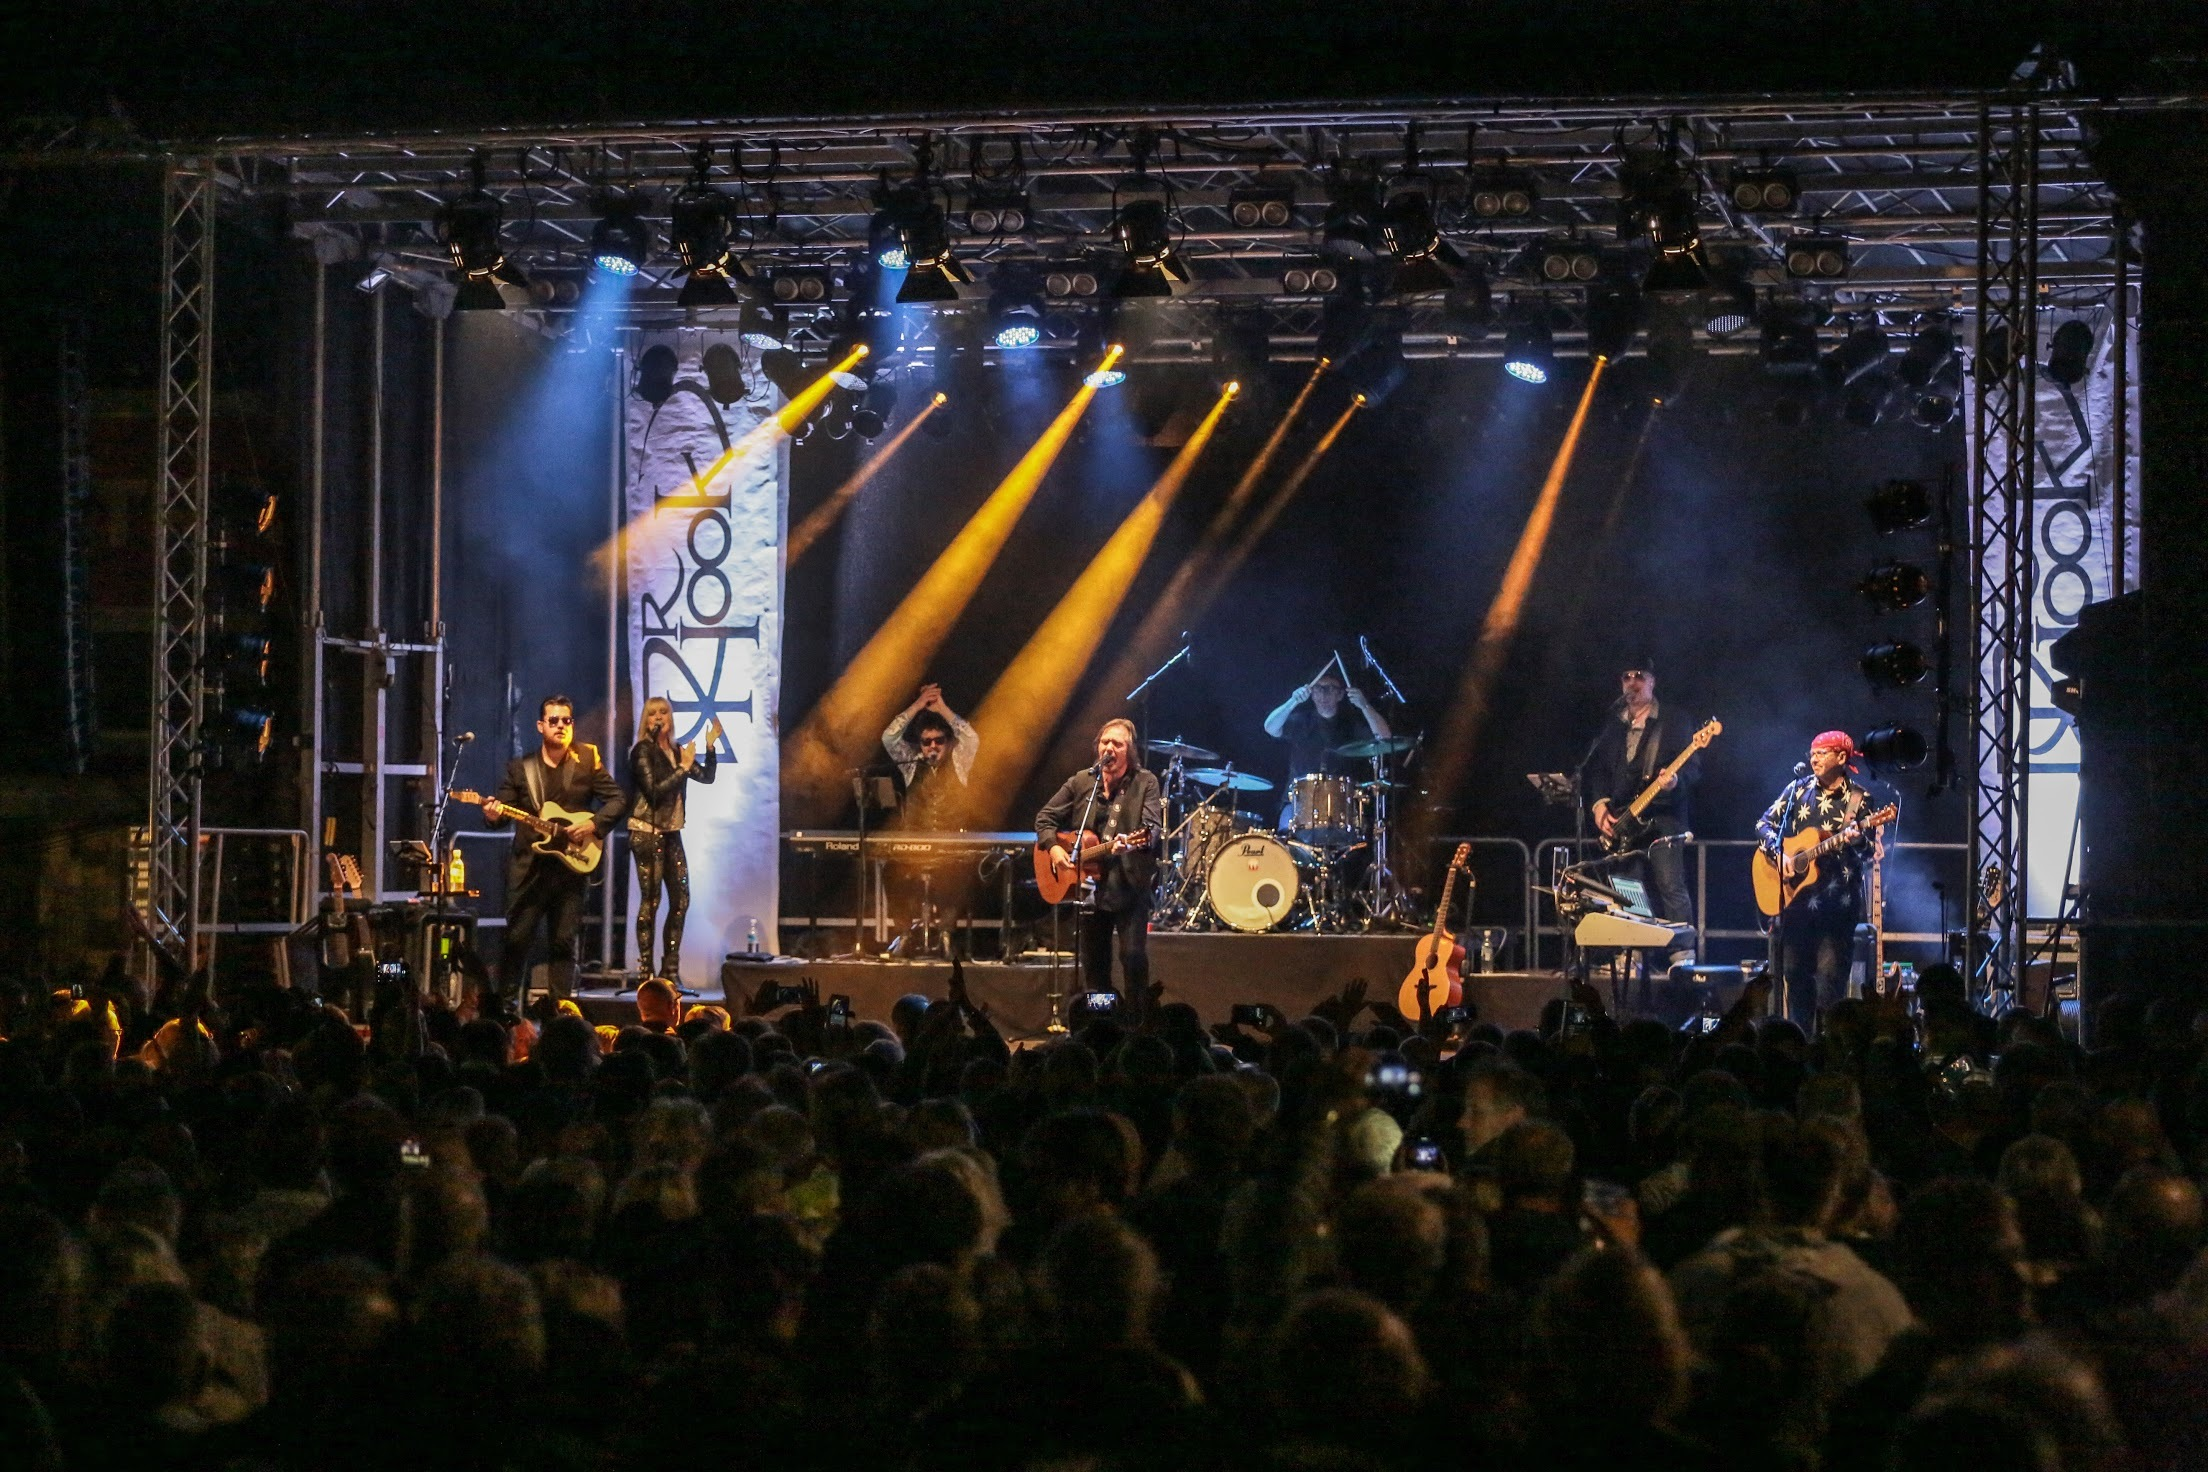 Dr Hook are back with one of only three UK concerts this year, at Chepstow Castle